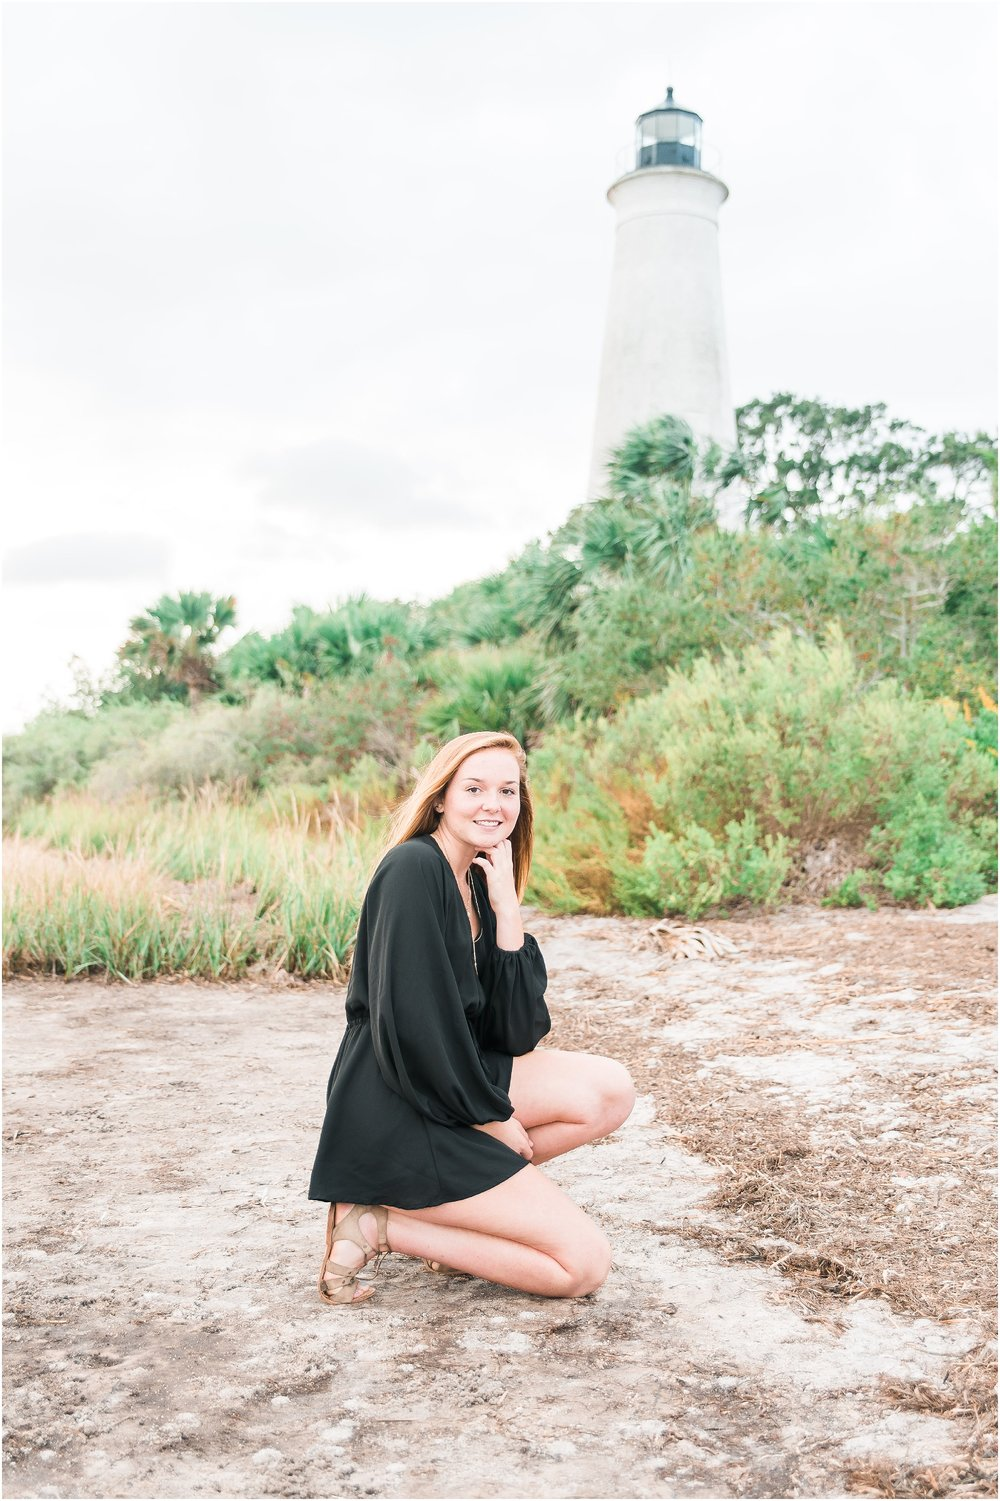 Tallahassee Florida Wedding & Senior Photographer, Anna Senior Session at Saint Marks Lighthouse, Crawfordville Florida_0006.jpg